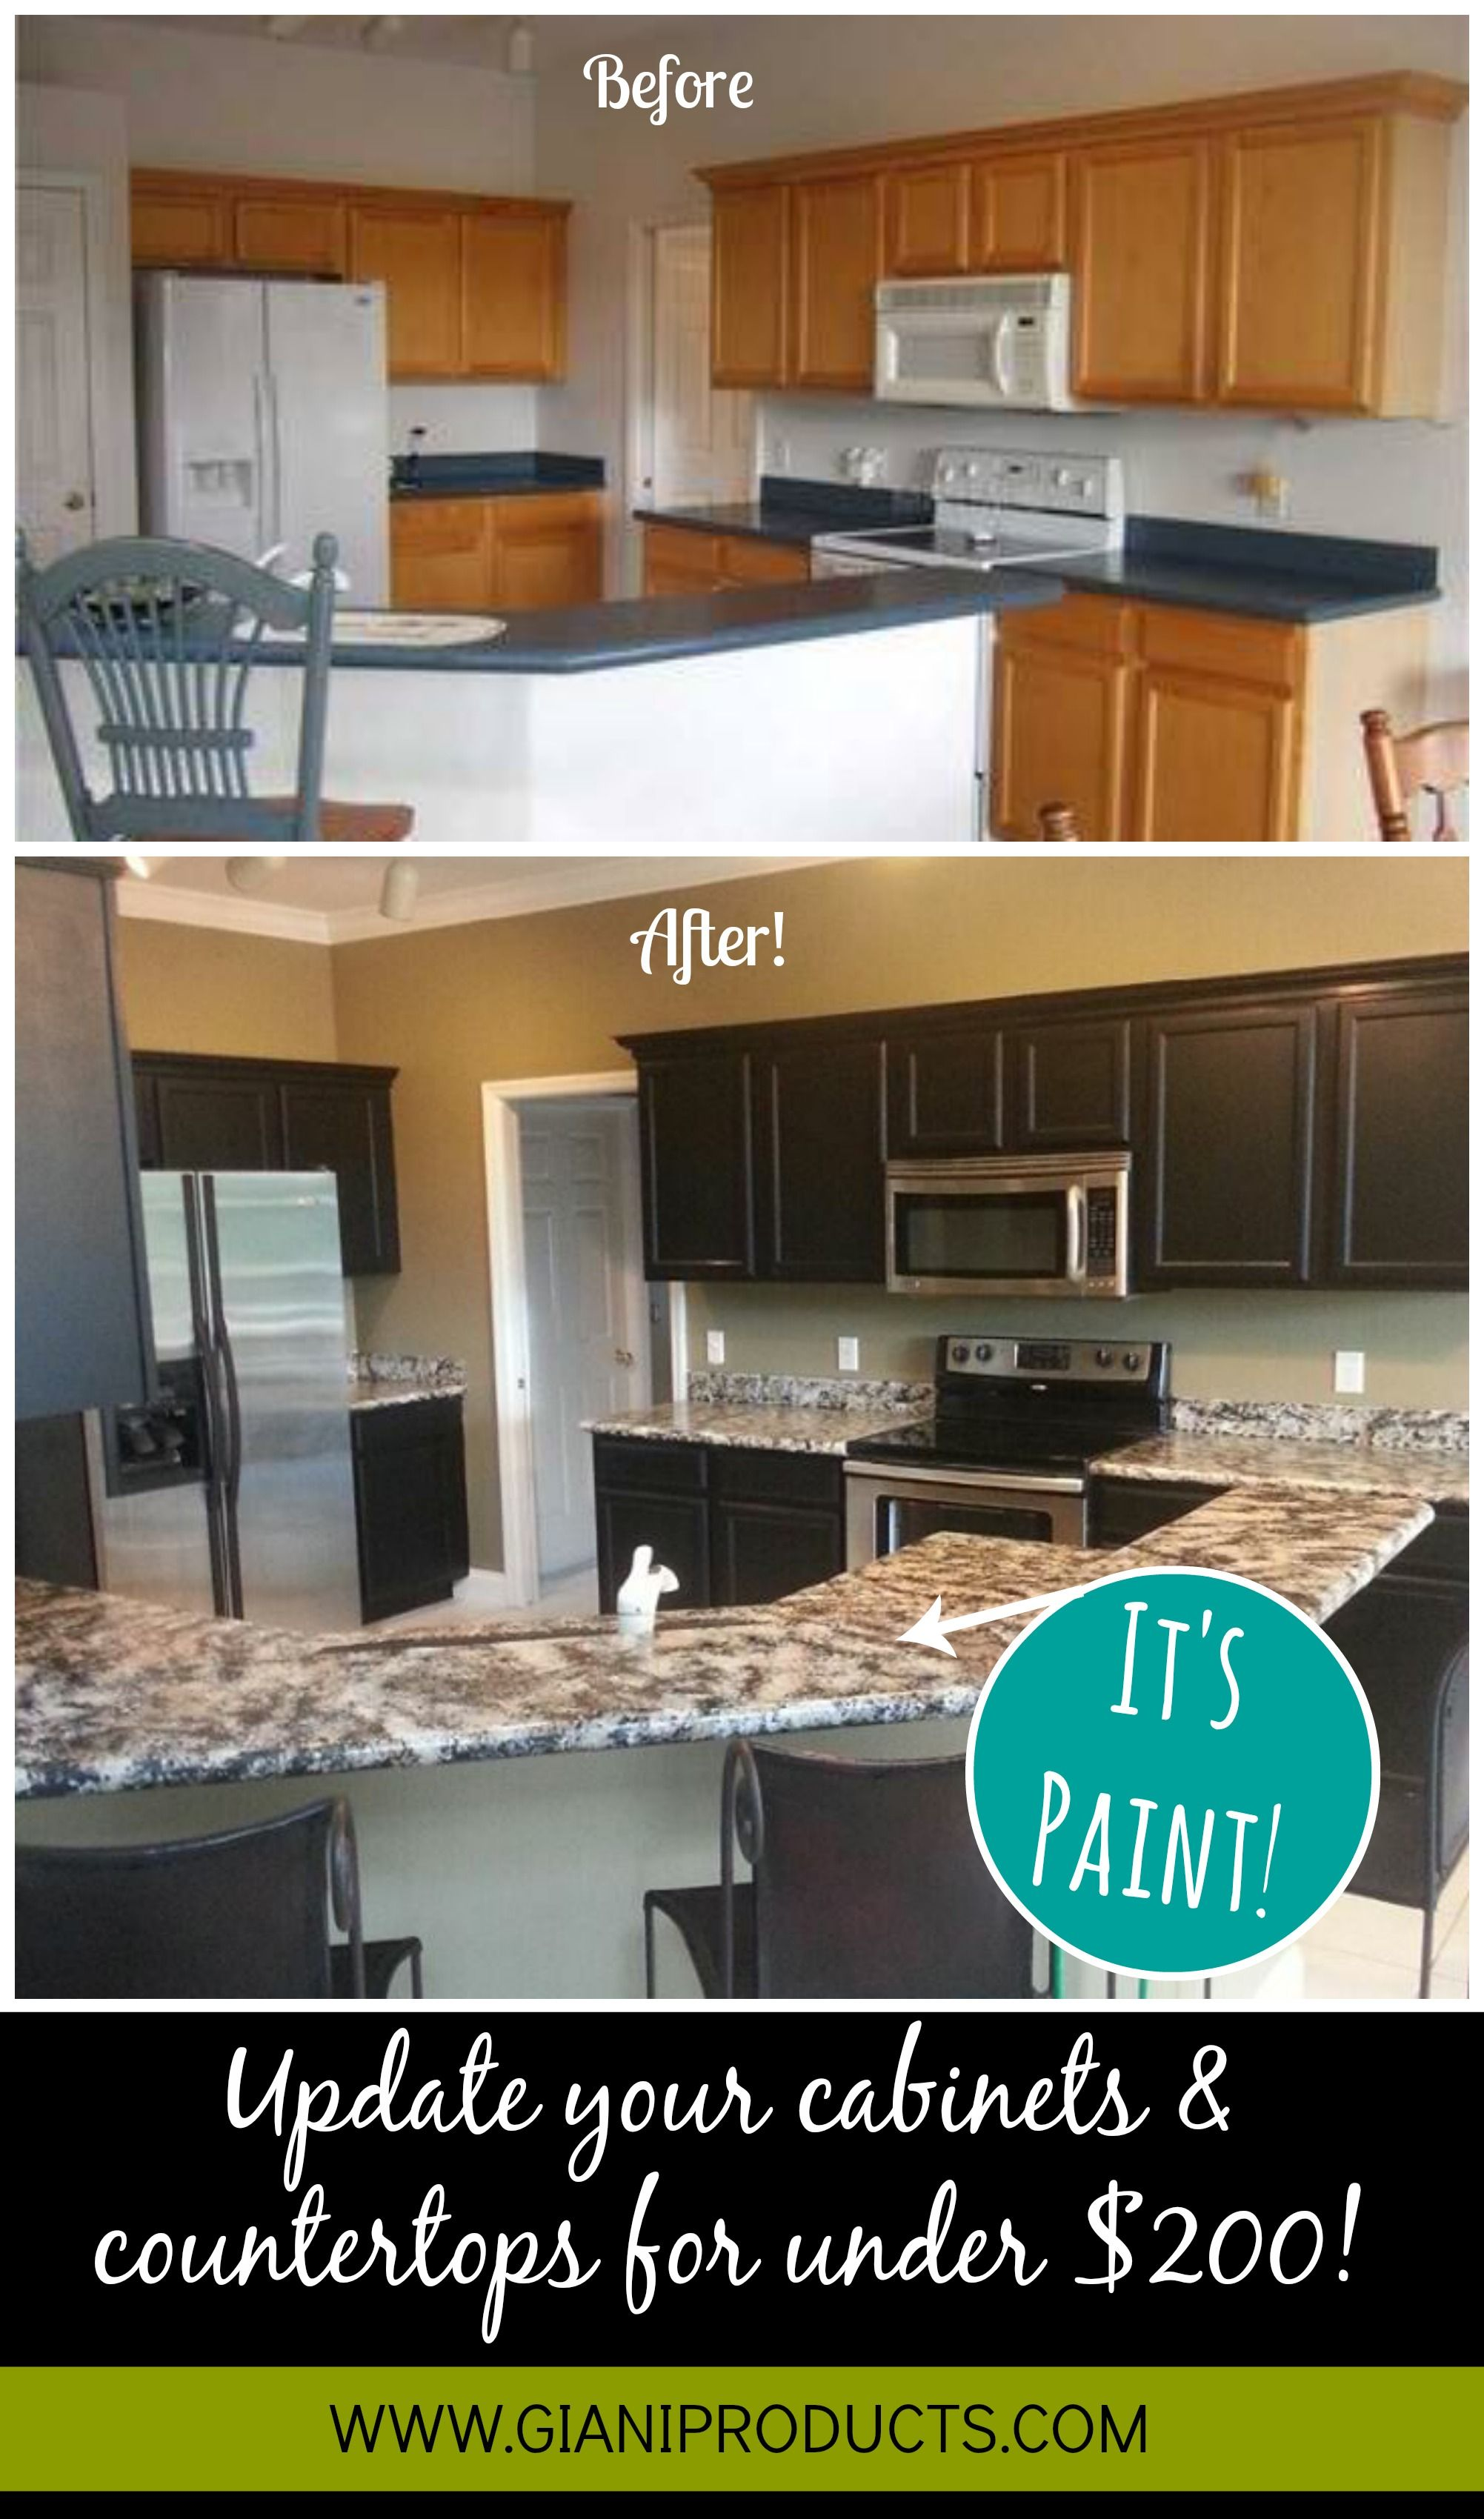 Kitchen Update On A Budget Paint That Looks Like Granite And One Day Cabinet Makeover Diy Www Gianigranite Home Remodeling Kitchen Diy Makeover Diy Kitchen